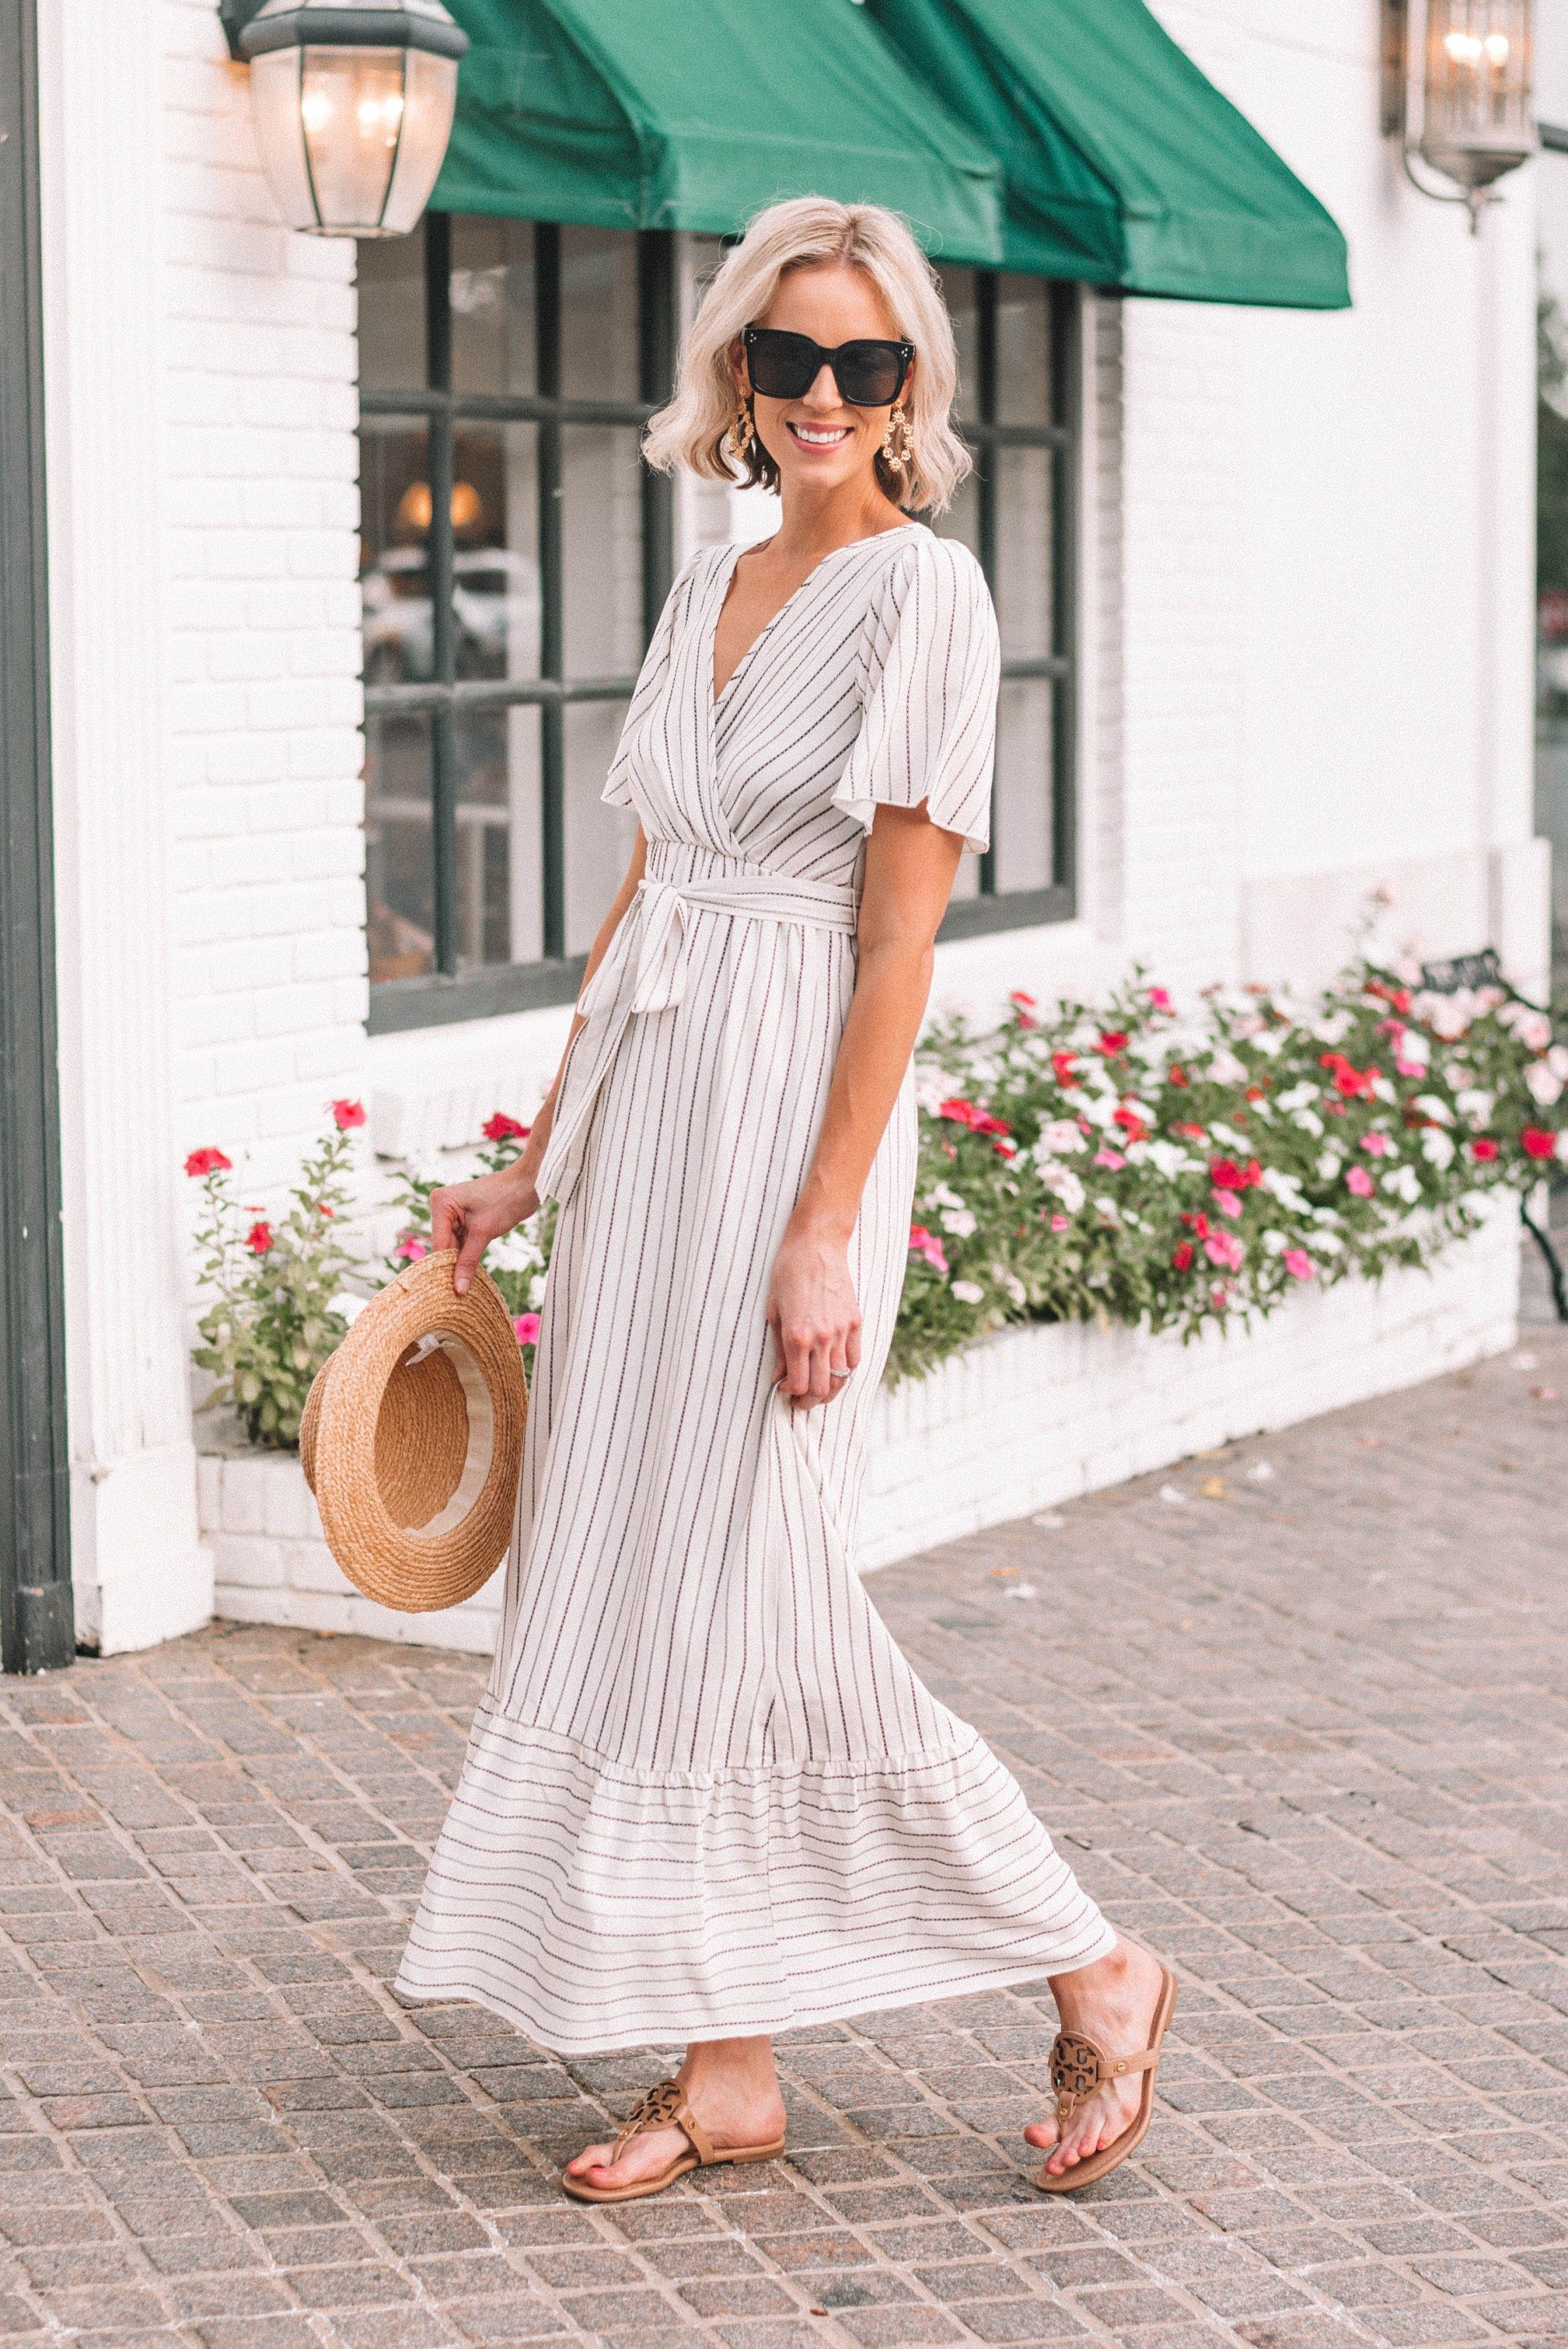 707587e790e4c This flattering striped summer maxi dress is an easy and fun addition to  your wardrobe.